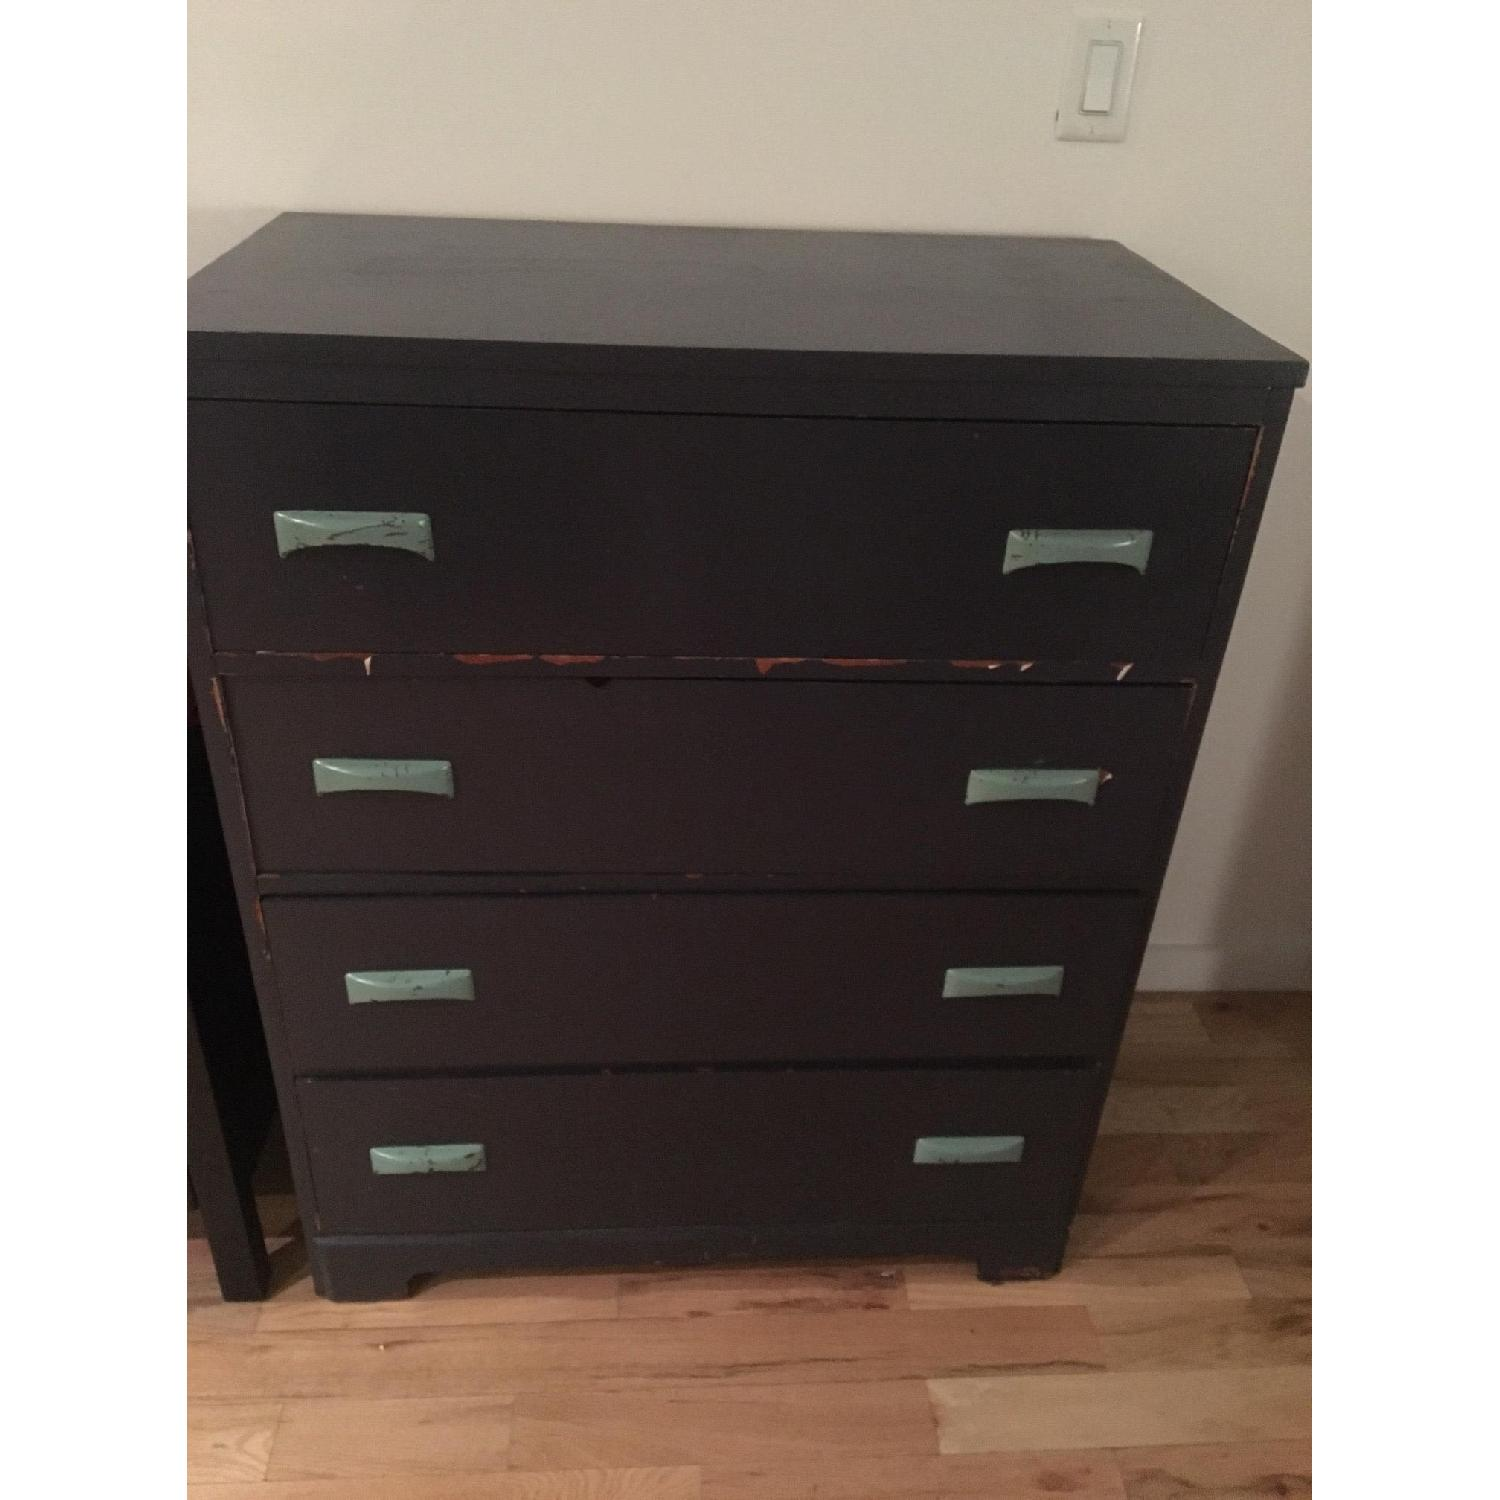 Hummel's Good Furniture Dark Blue Classic 4-Drawer Dresser - image-2